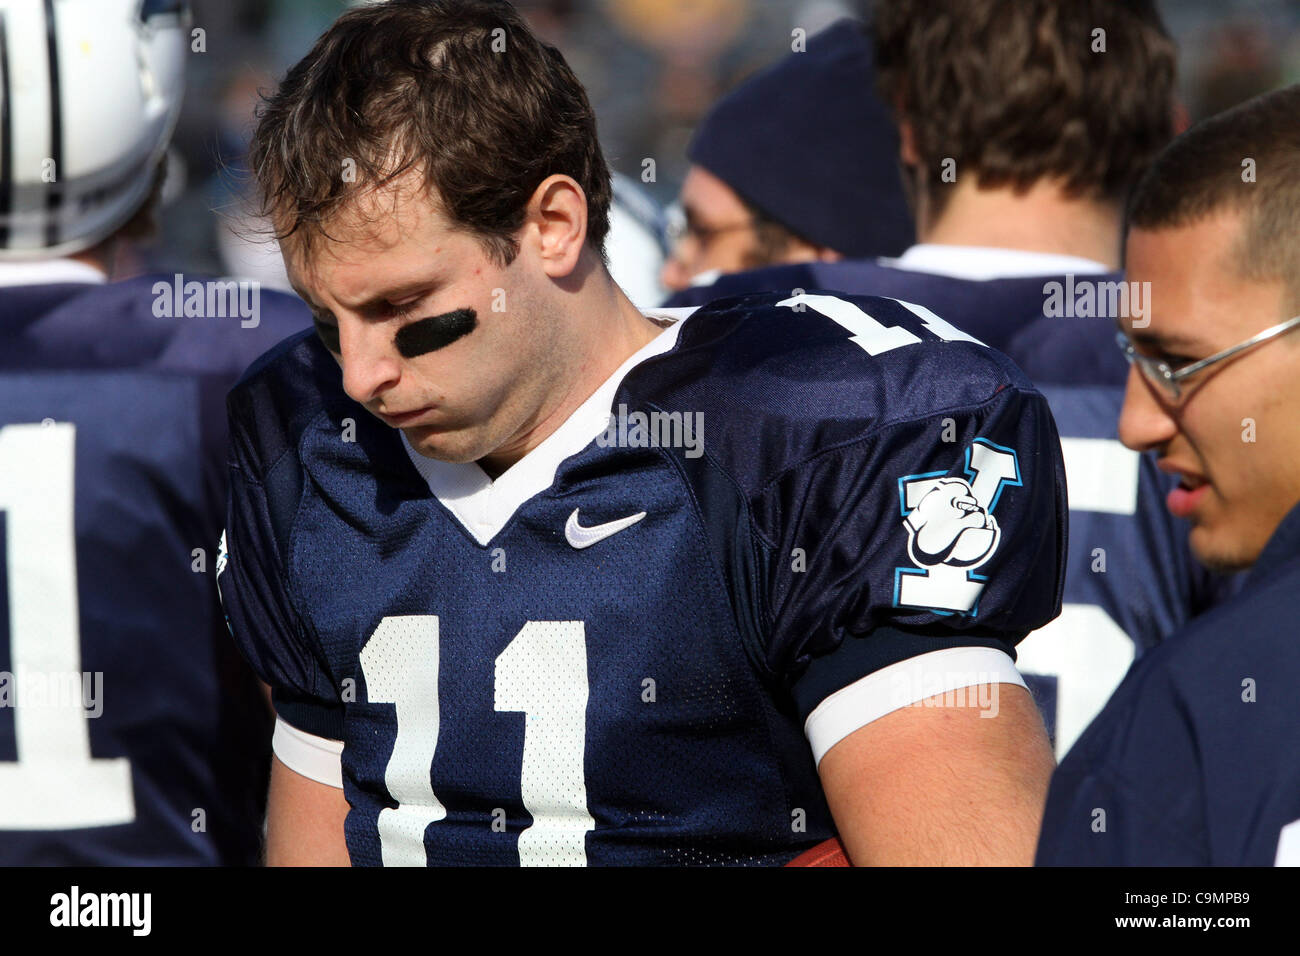 Nov. 19, 2011 - New Haven, CT, U.S. - Yale quarterback #11 PATRICK WITT after throwing an interception during the - Stock Image